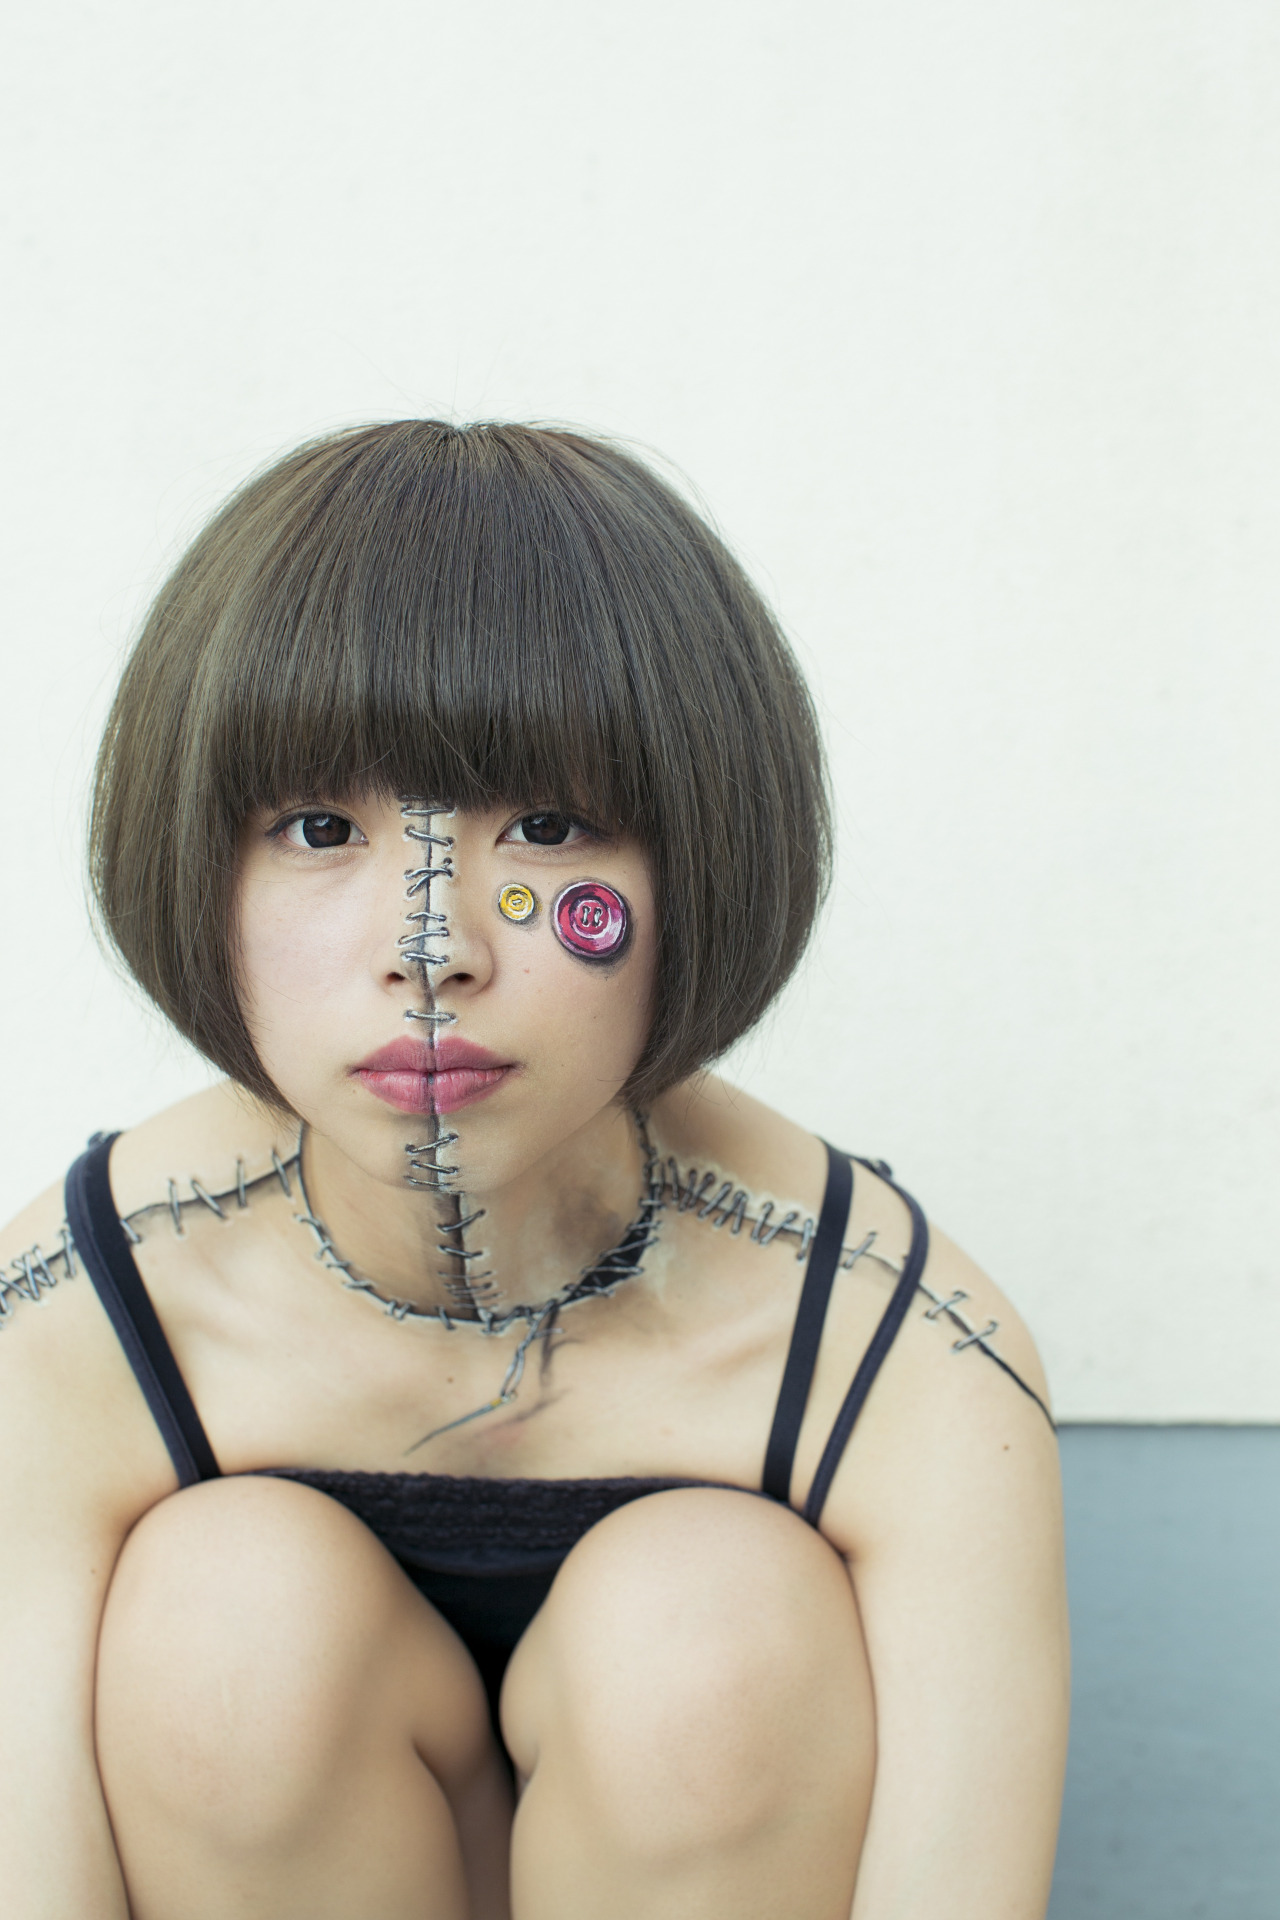 chooo-san-body-art-is-why-asians-are-best-at-everything-03